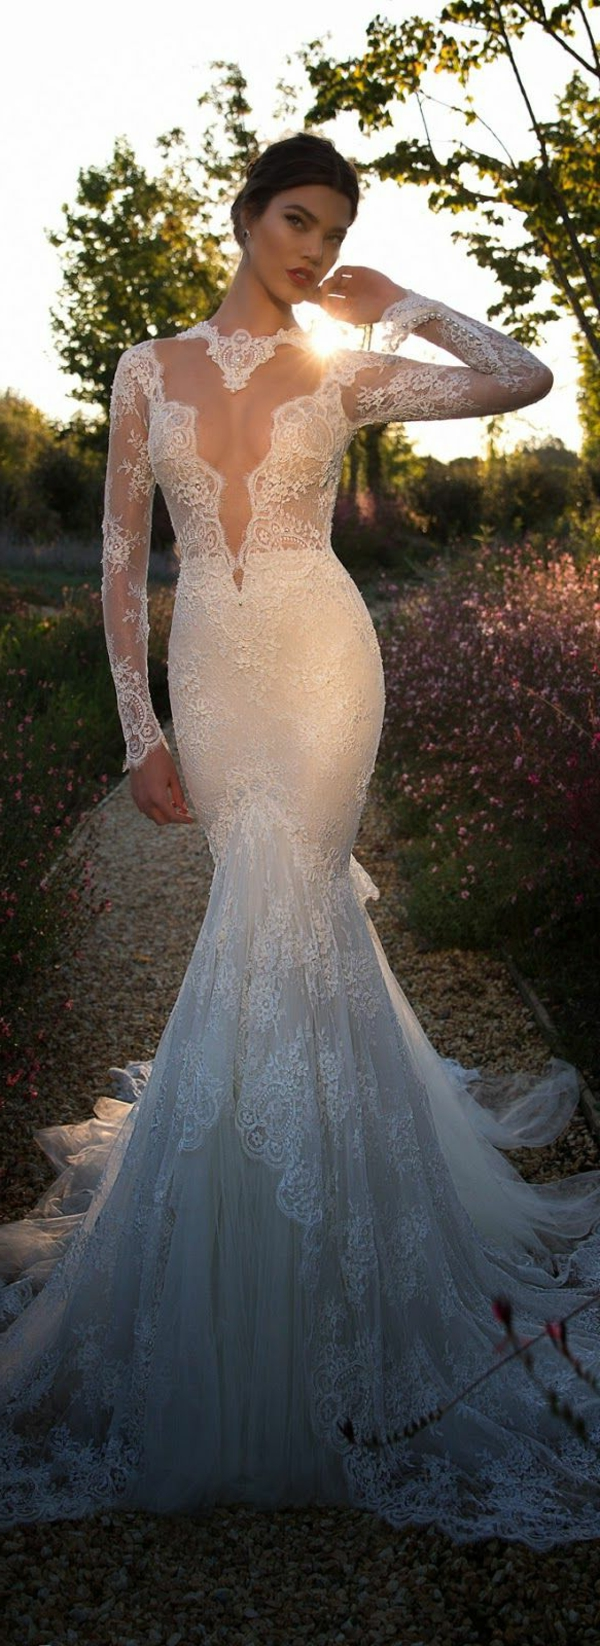 robe-belle-mariage